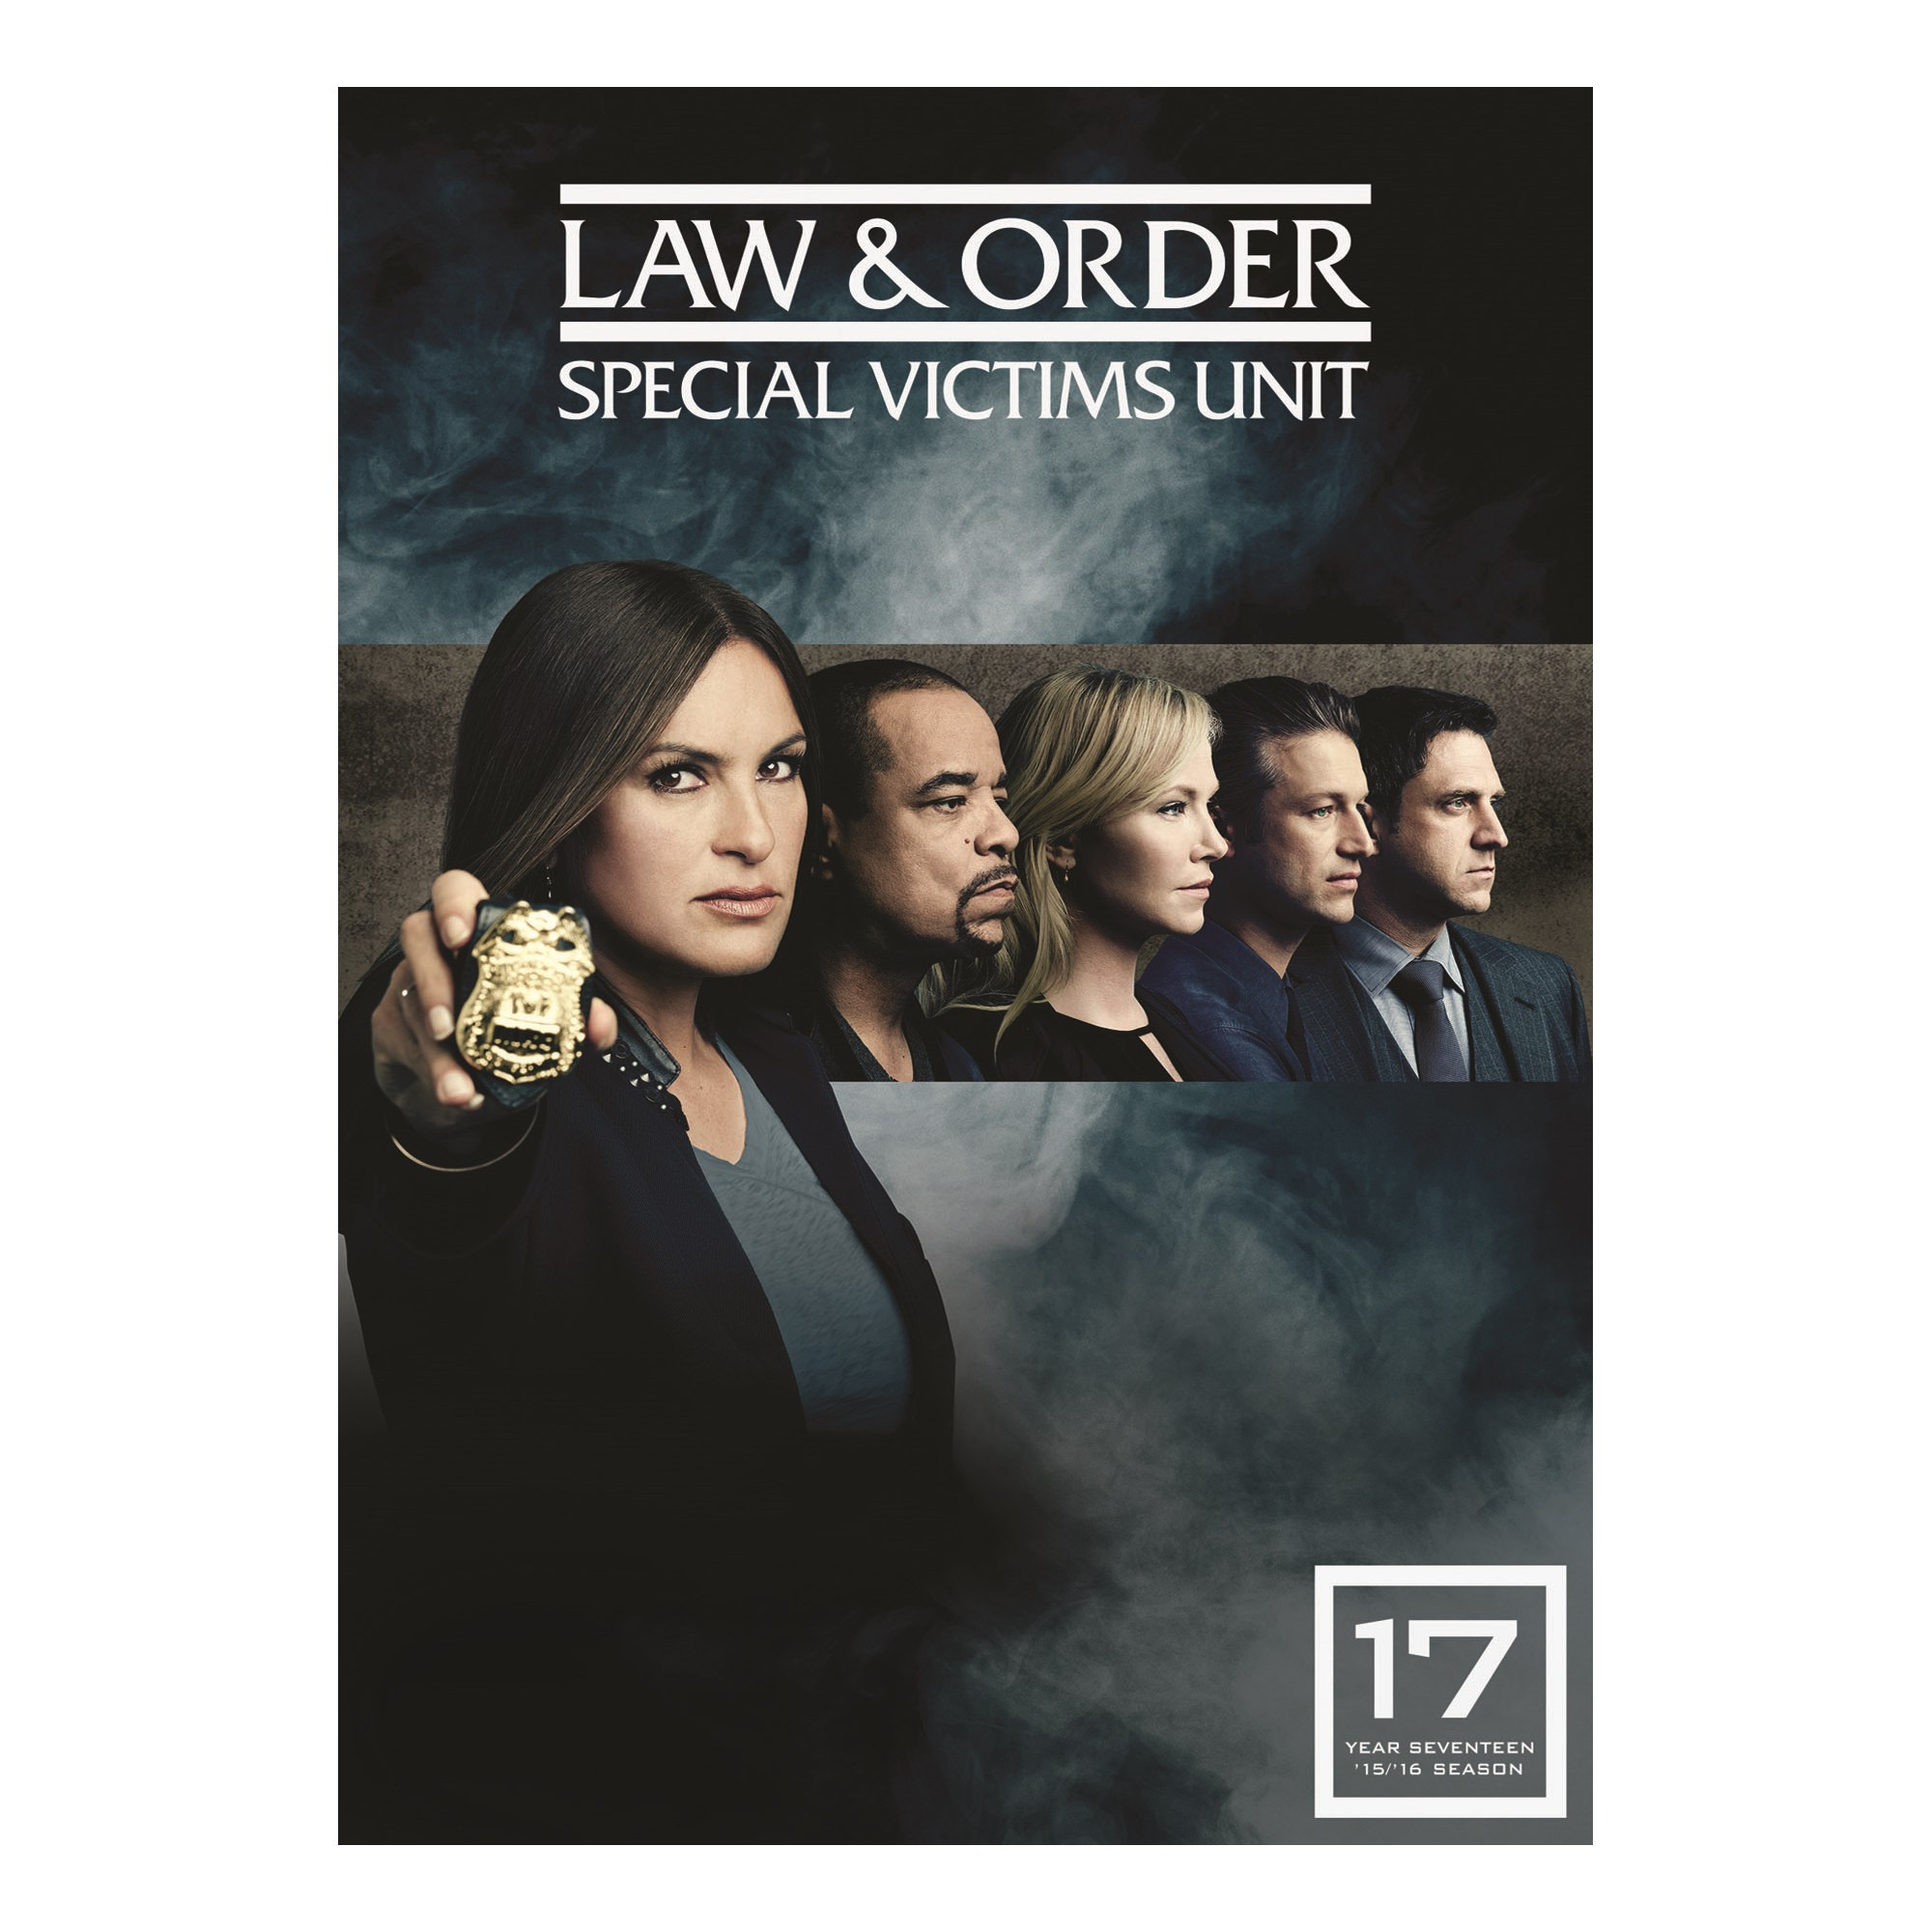 Law Order Special Victims Unit Year 17 Dvd 2016 In 2021 Law And Order Special Victims Unit Law And Order Svu Law And Order